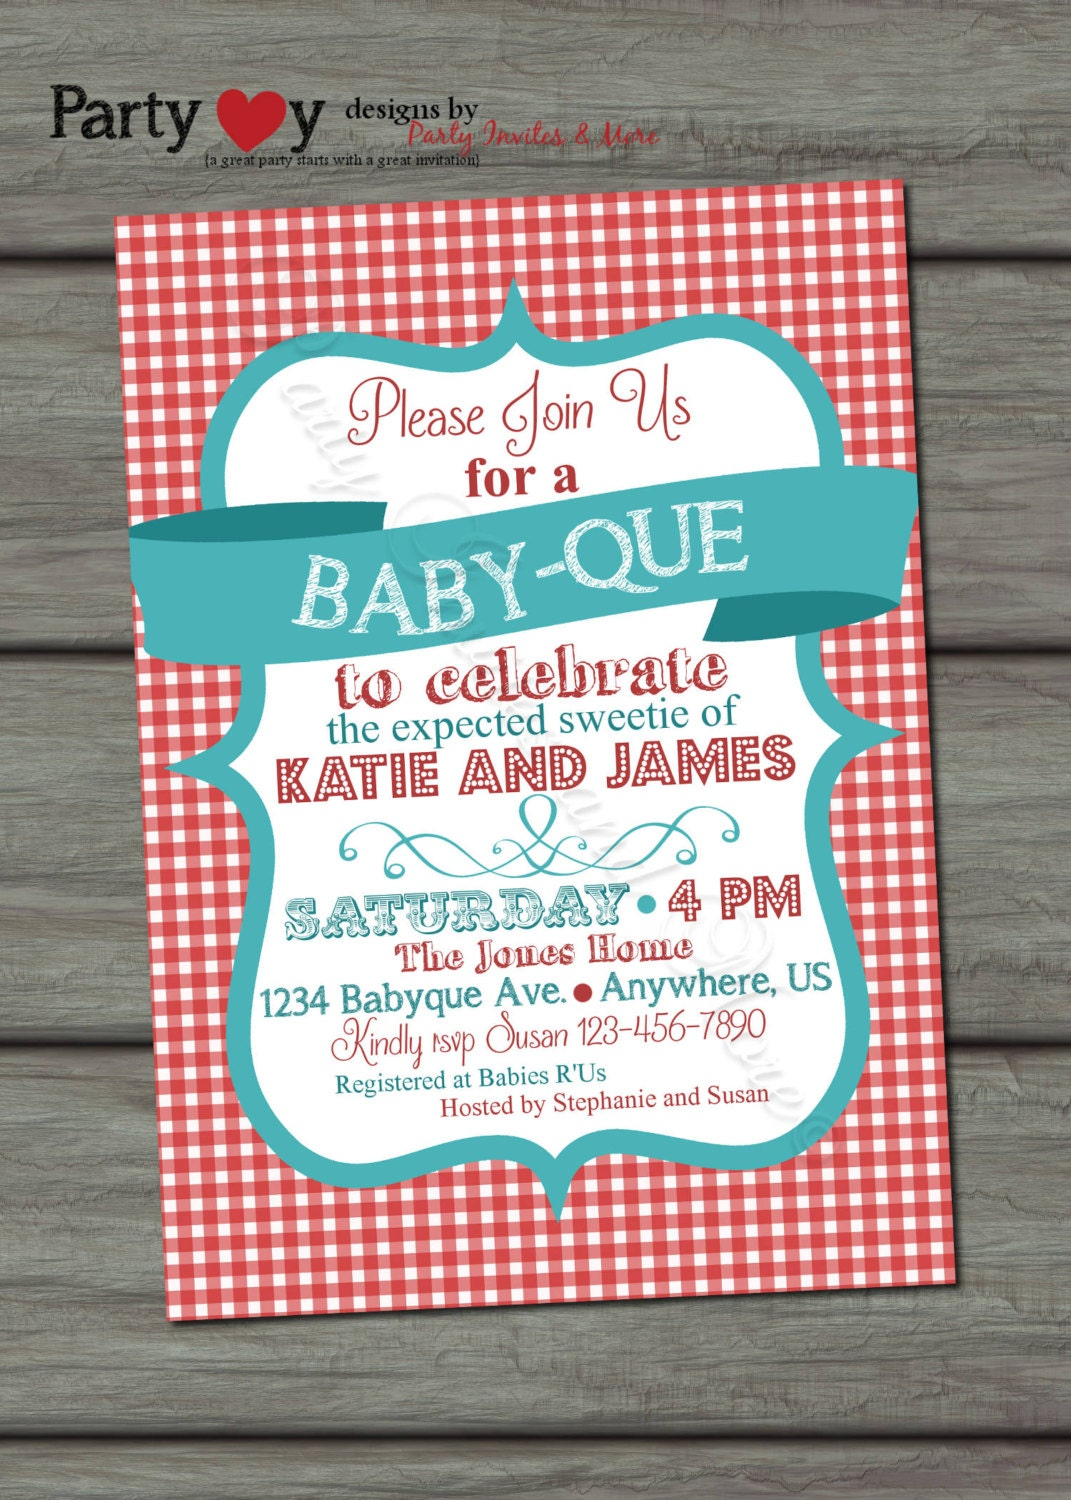 bbq baby shower invitation barbeque baby shower baby q invitation red gingham baby